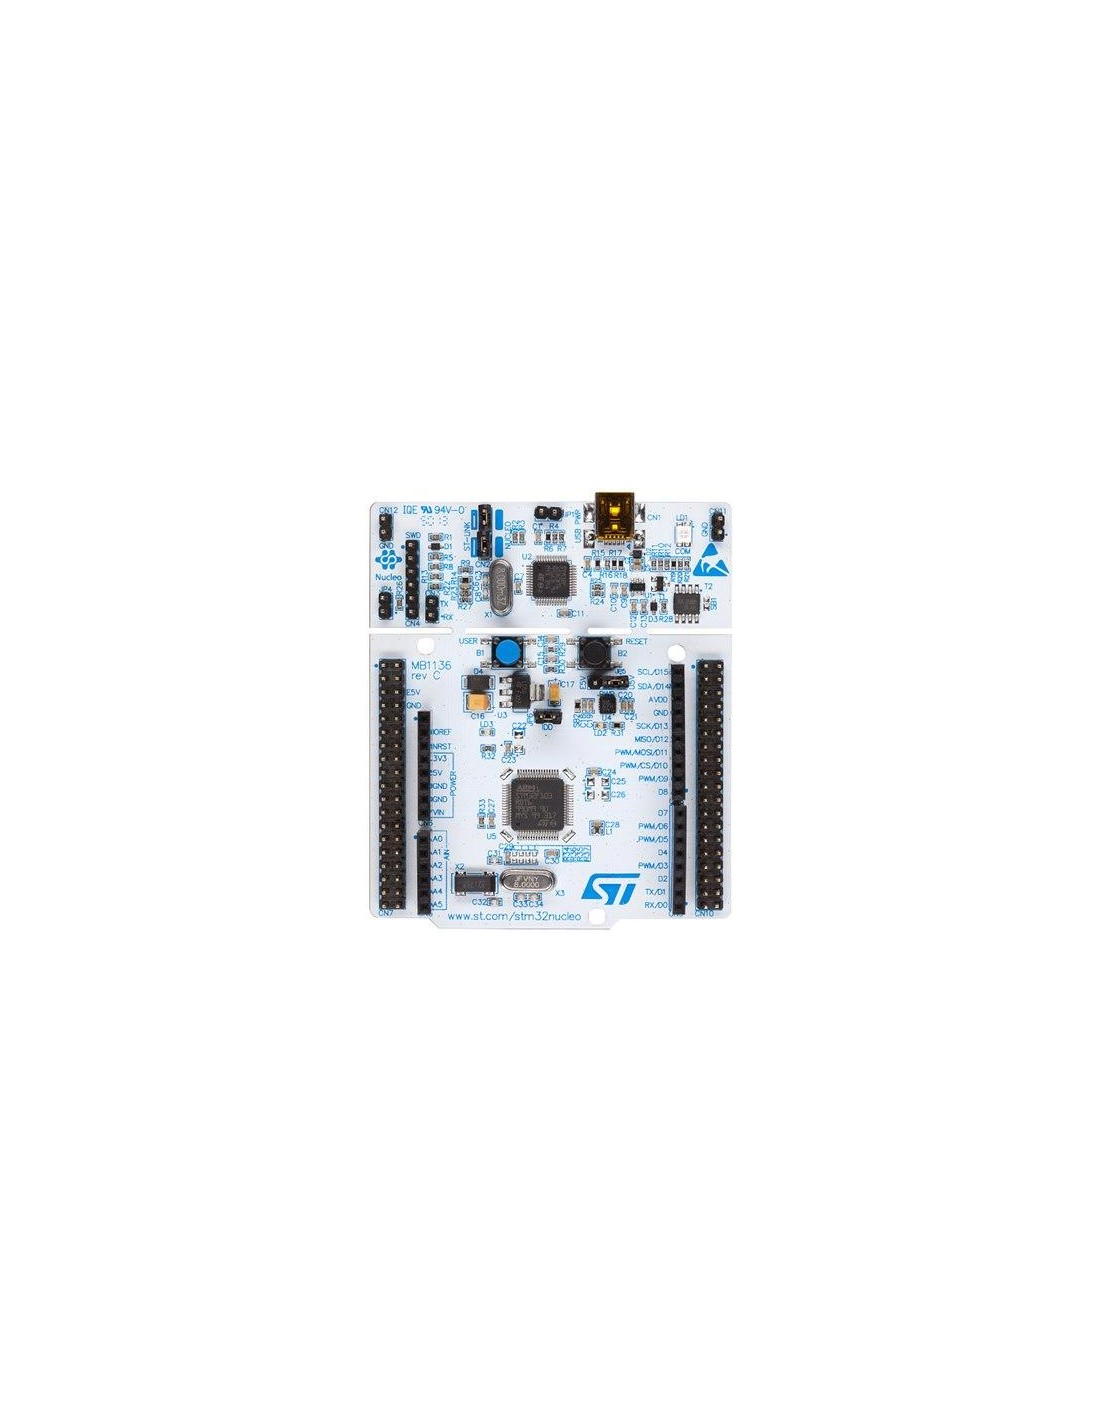 NUCLEO-F401RE (STM32 Nucleo development board for STM32 F4 series - with  STM32F401RE MCU, supports Arduino)